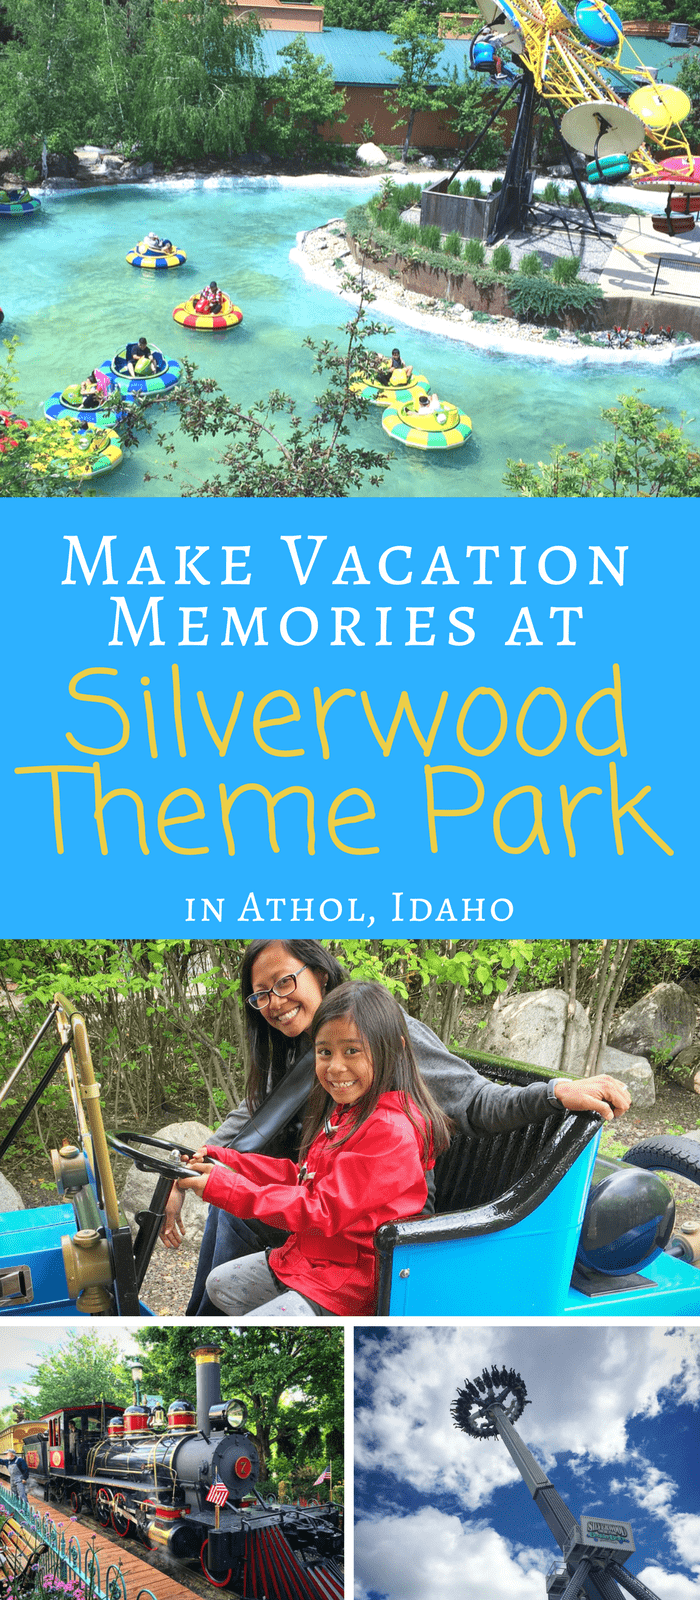 Silverwood Theme Park Collage -